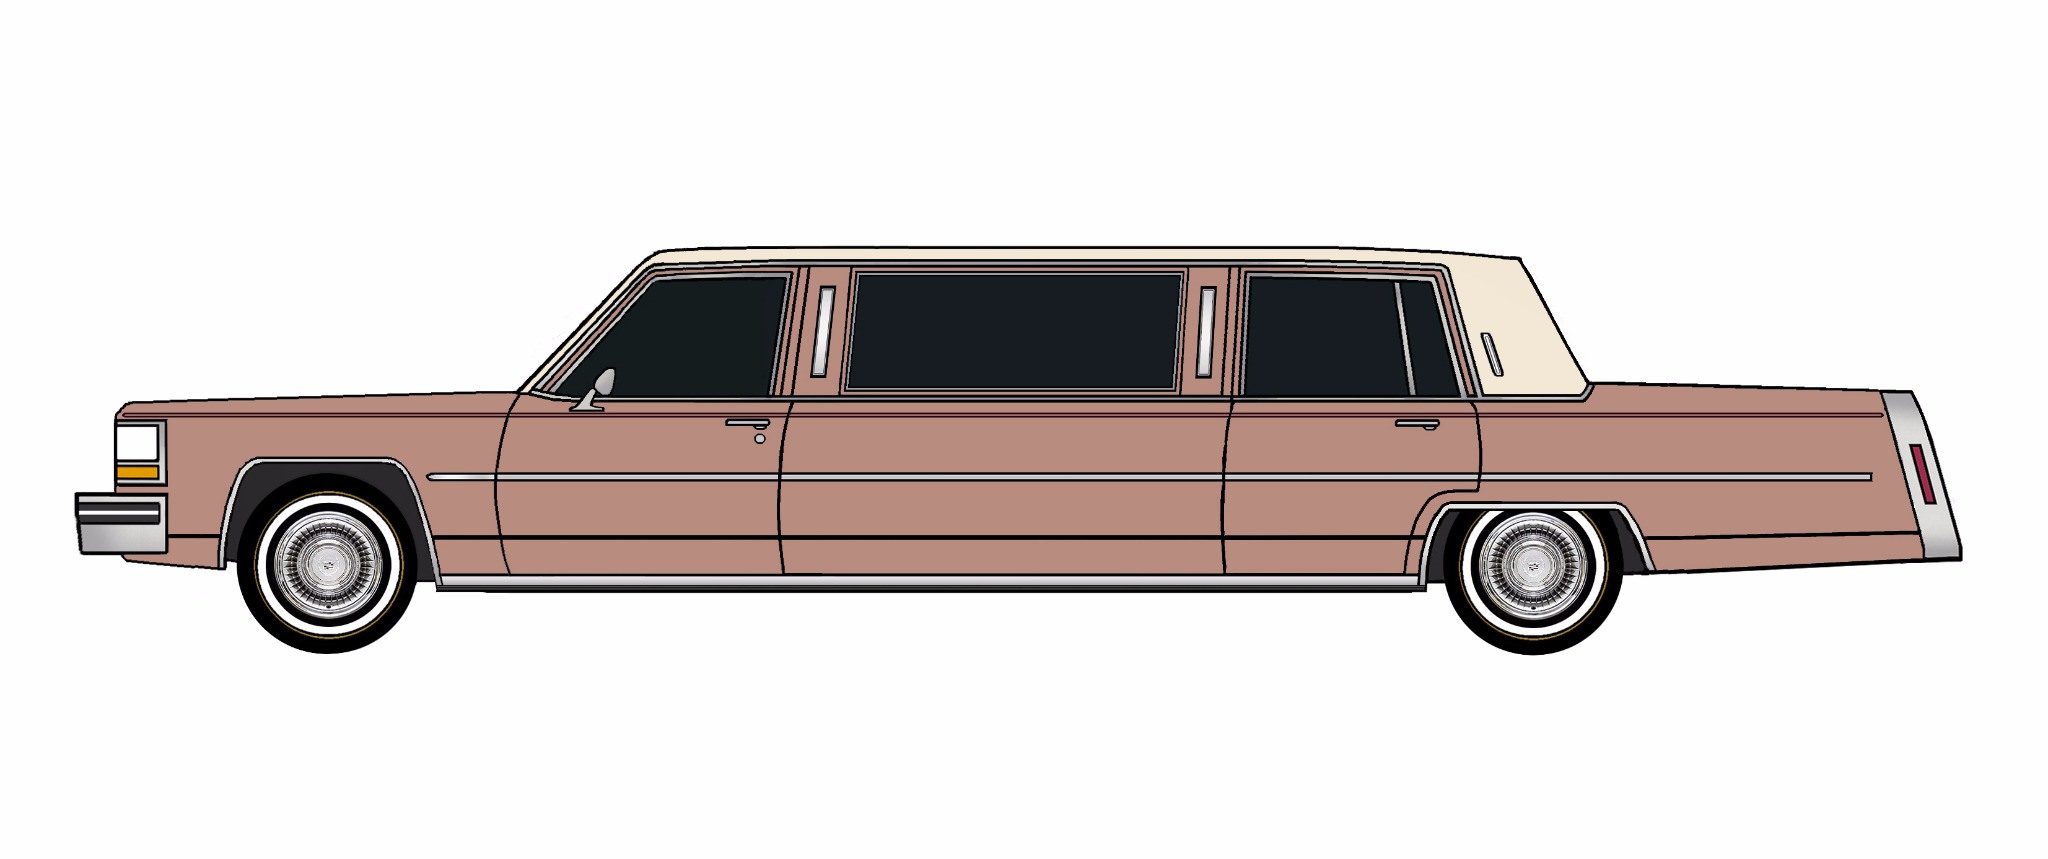 1980 Cadillac Fleetwood Limo CLAY ROSE